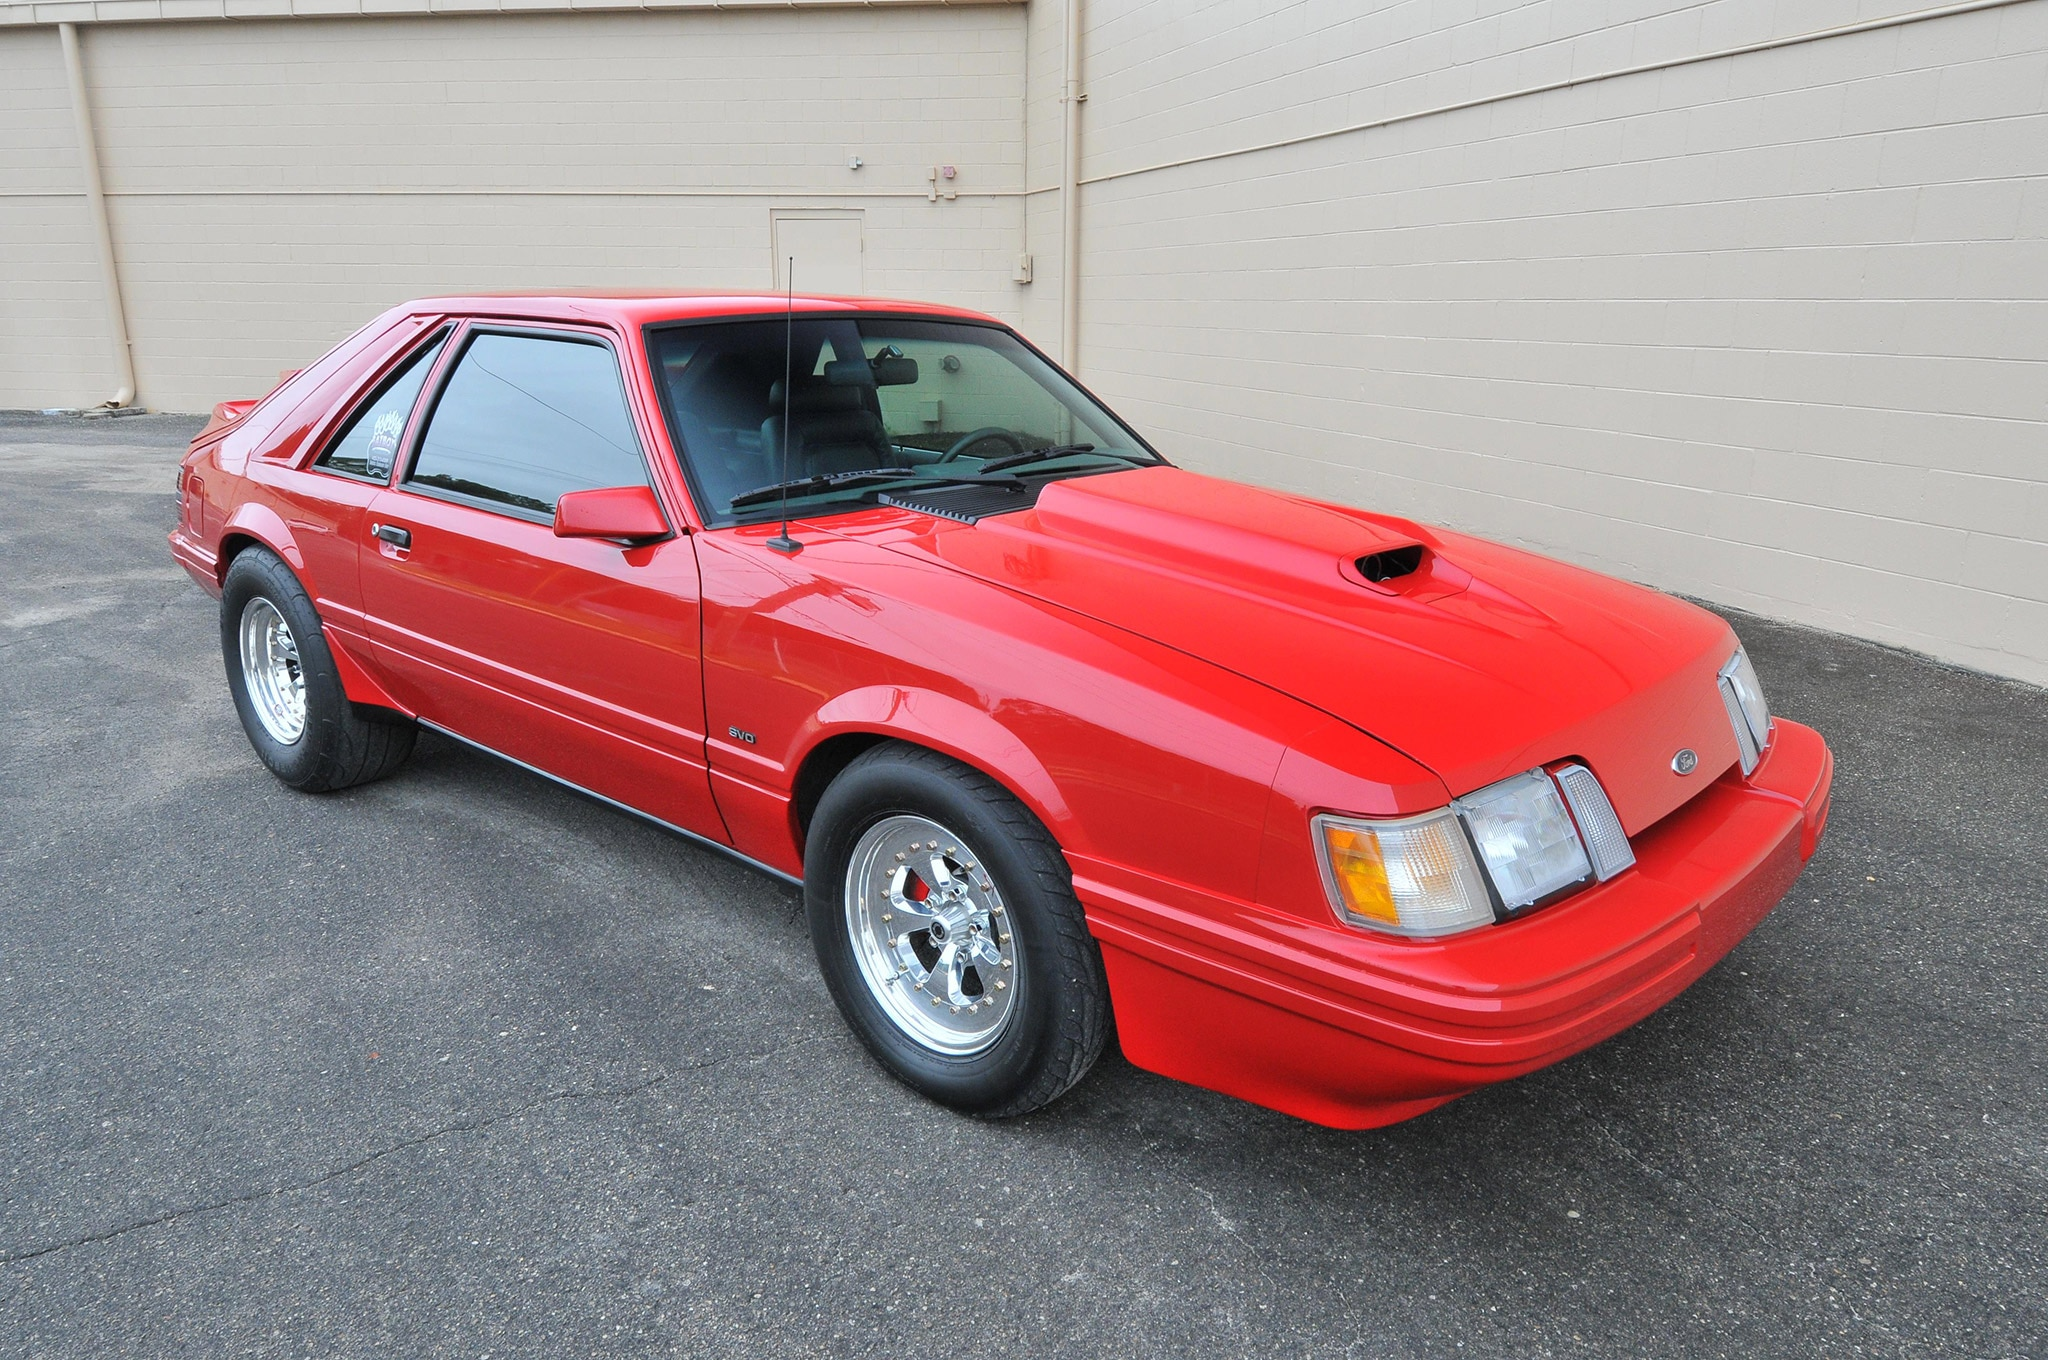 1986 Ford Mustang Svo Coyote Vermillion Red Passenger Side View